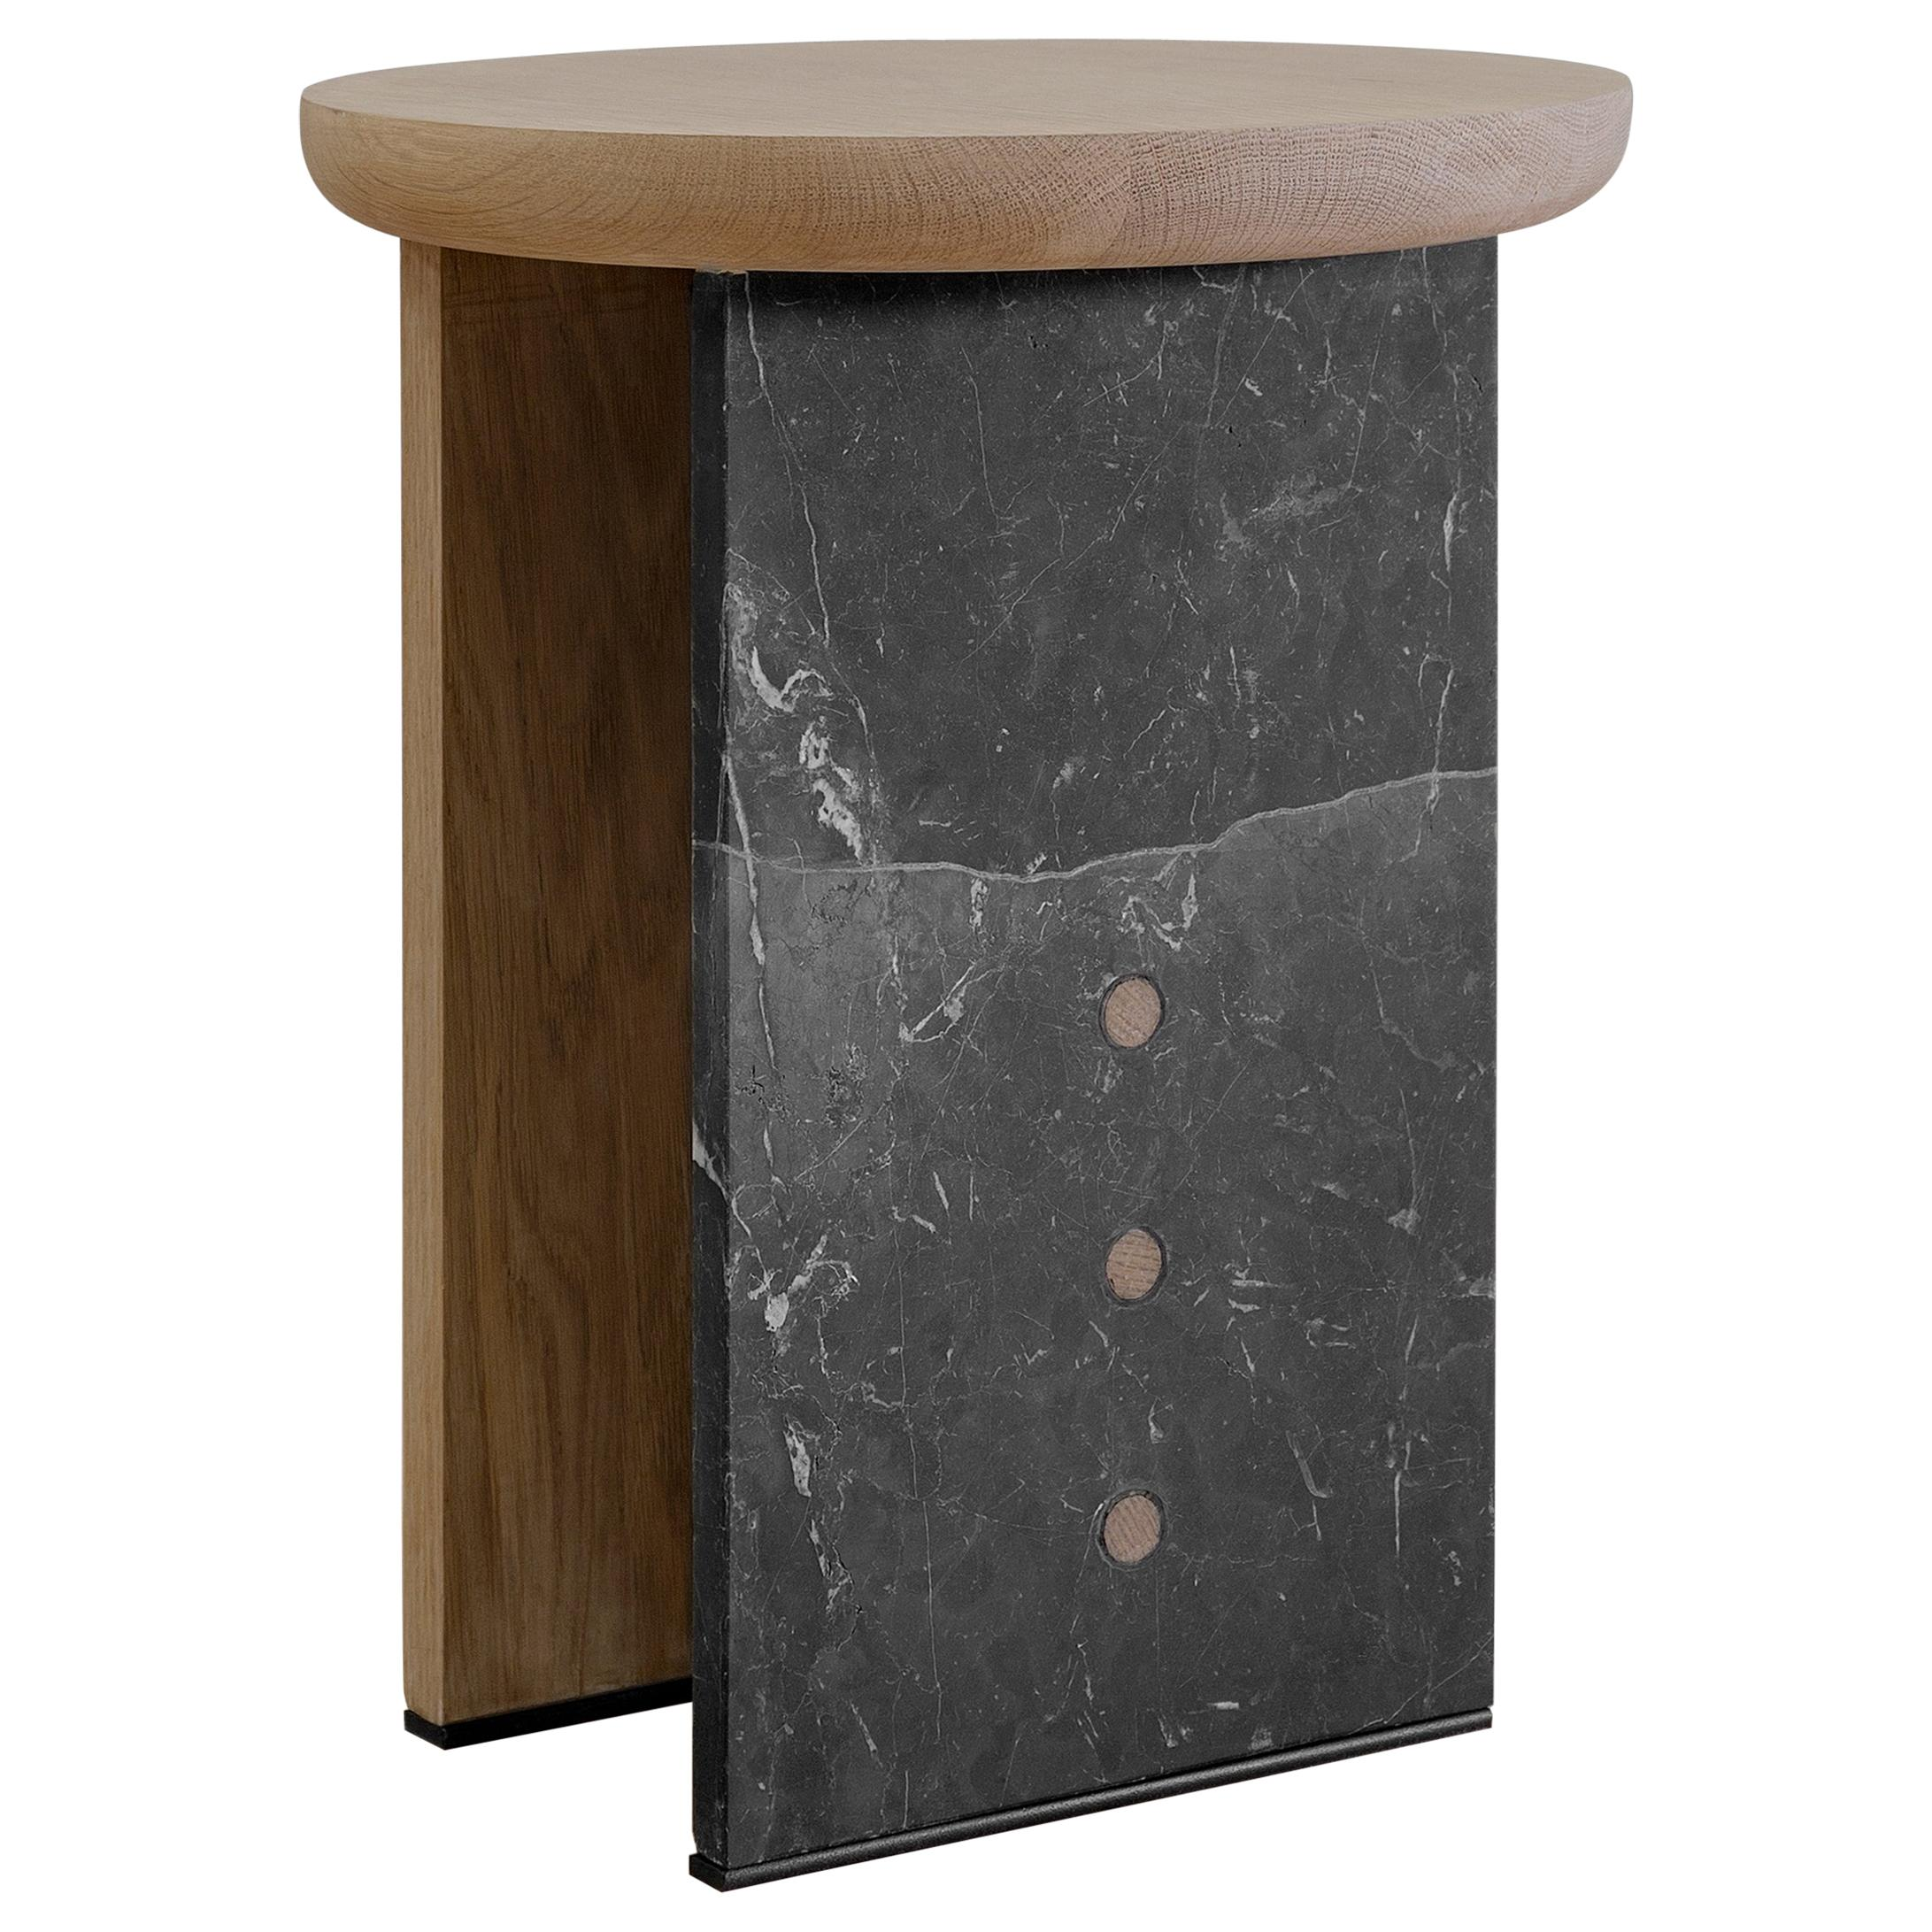 Antropología 05, Sculptural Stool and Side Table